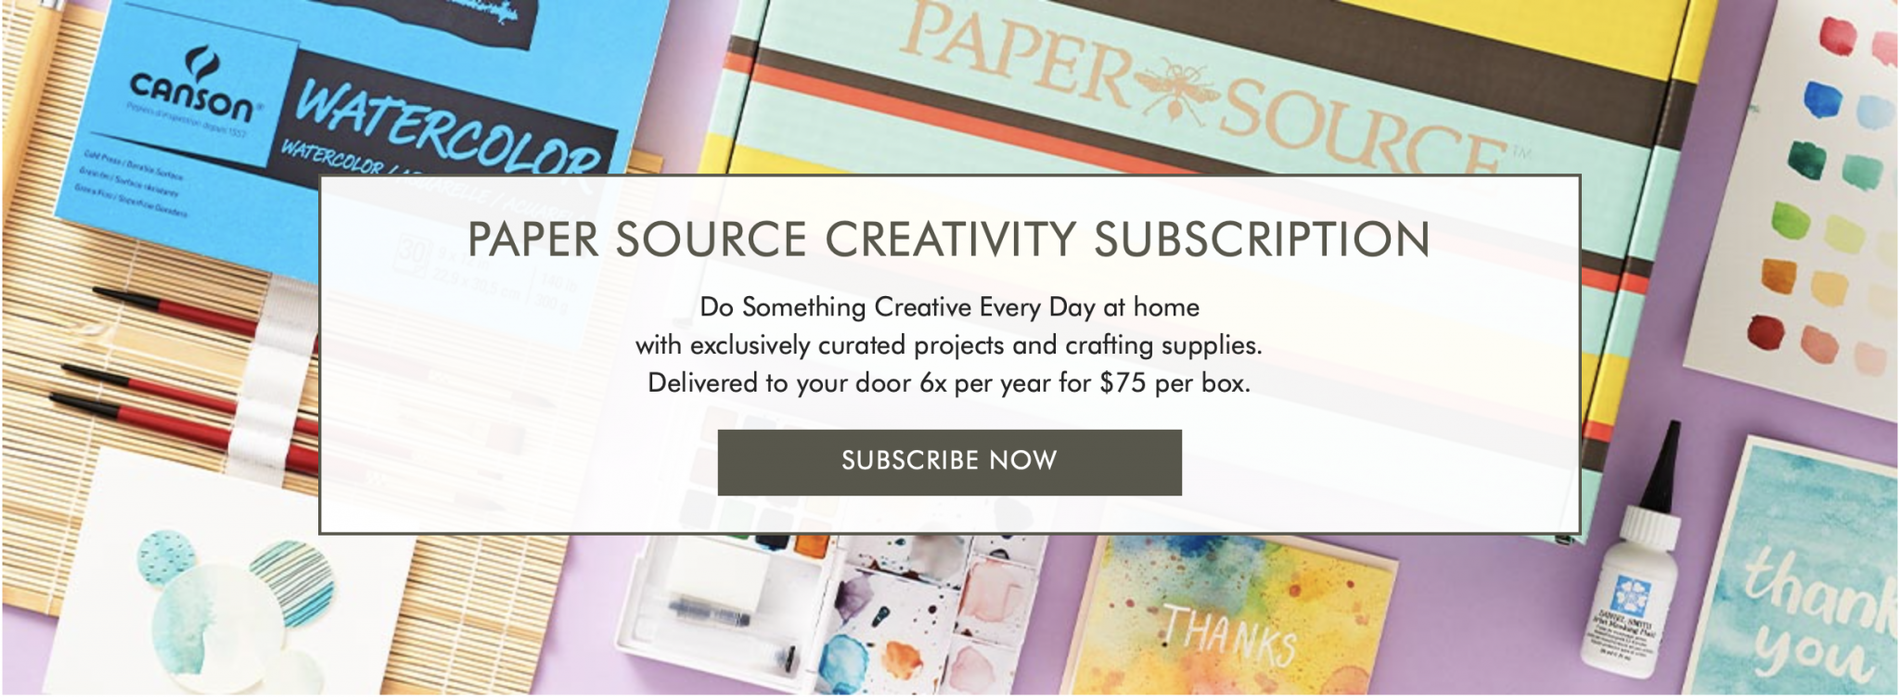 Paper Source June 2021 Creativity Subscription – On Sale Now + Full Spoilers